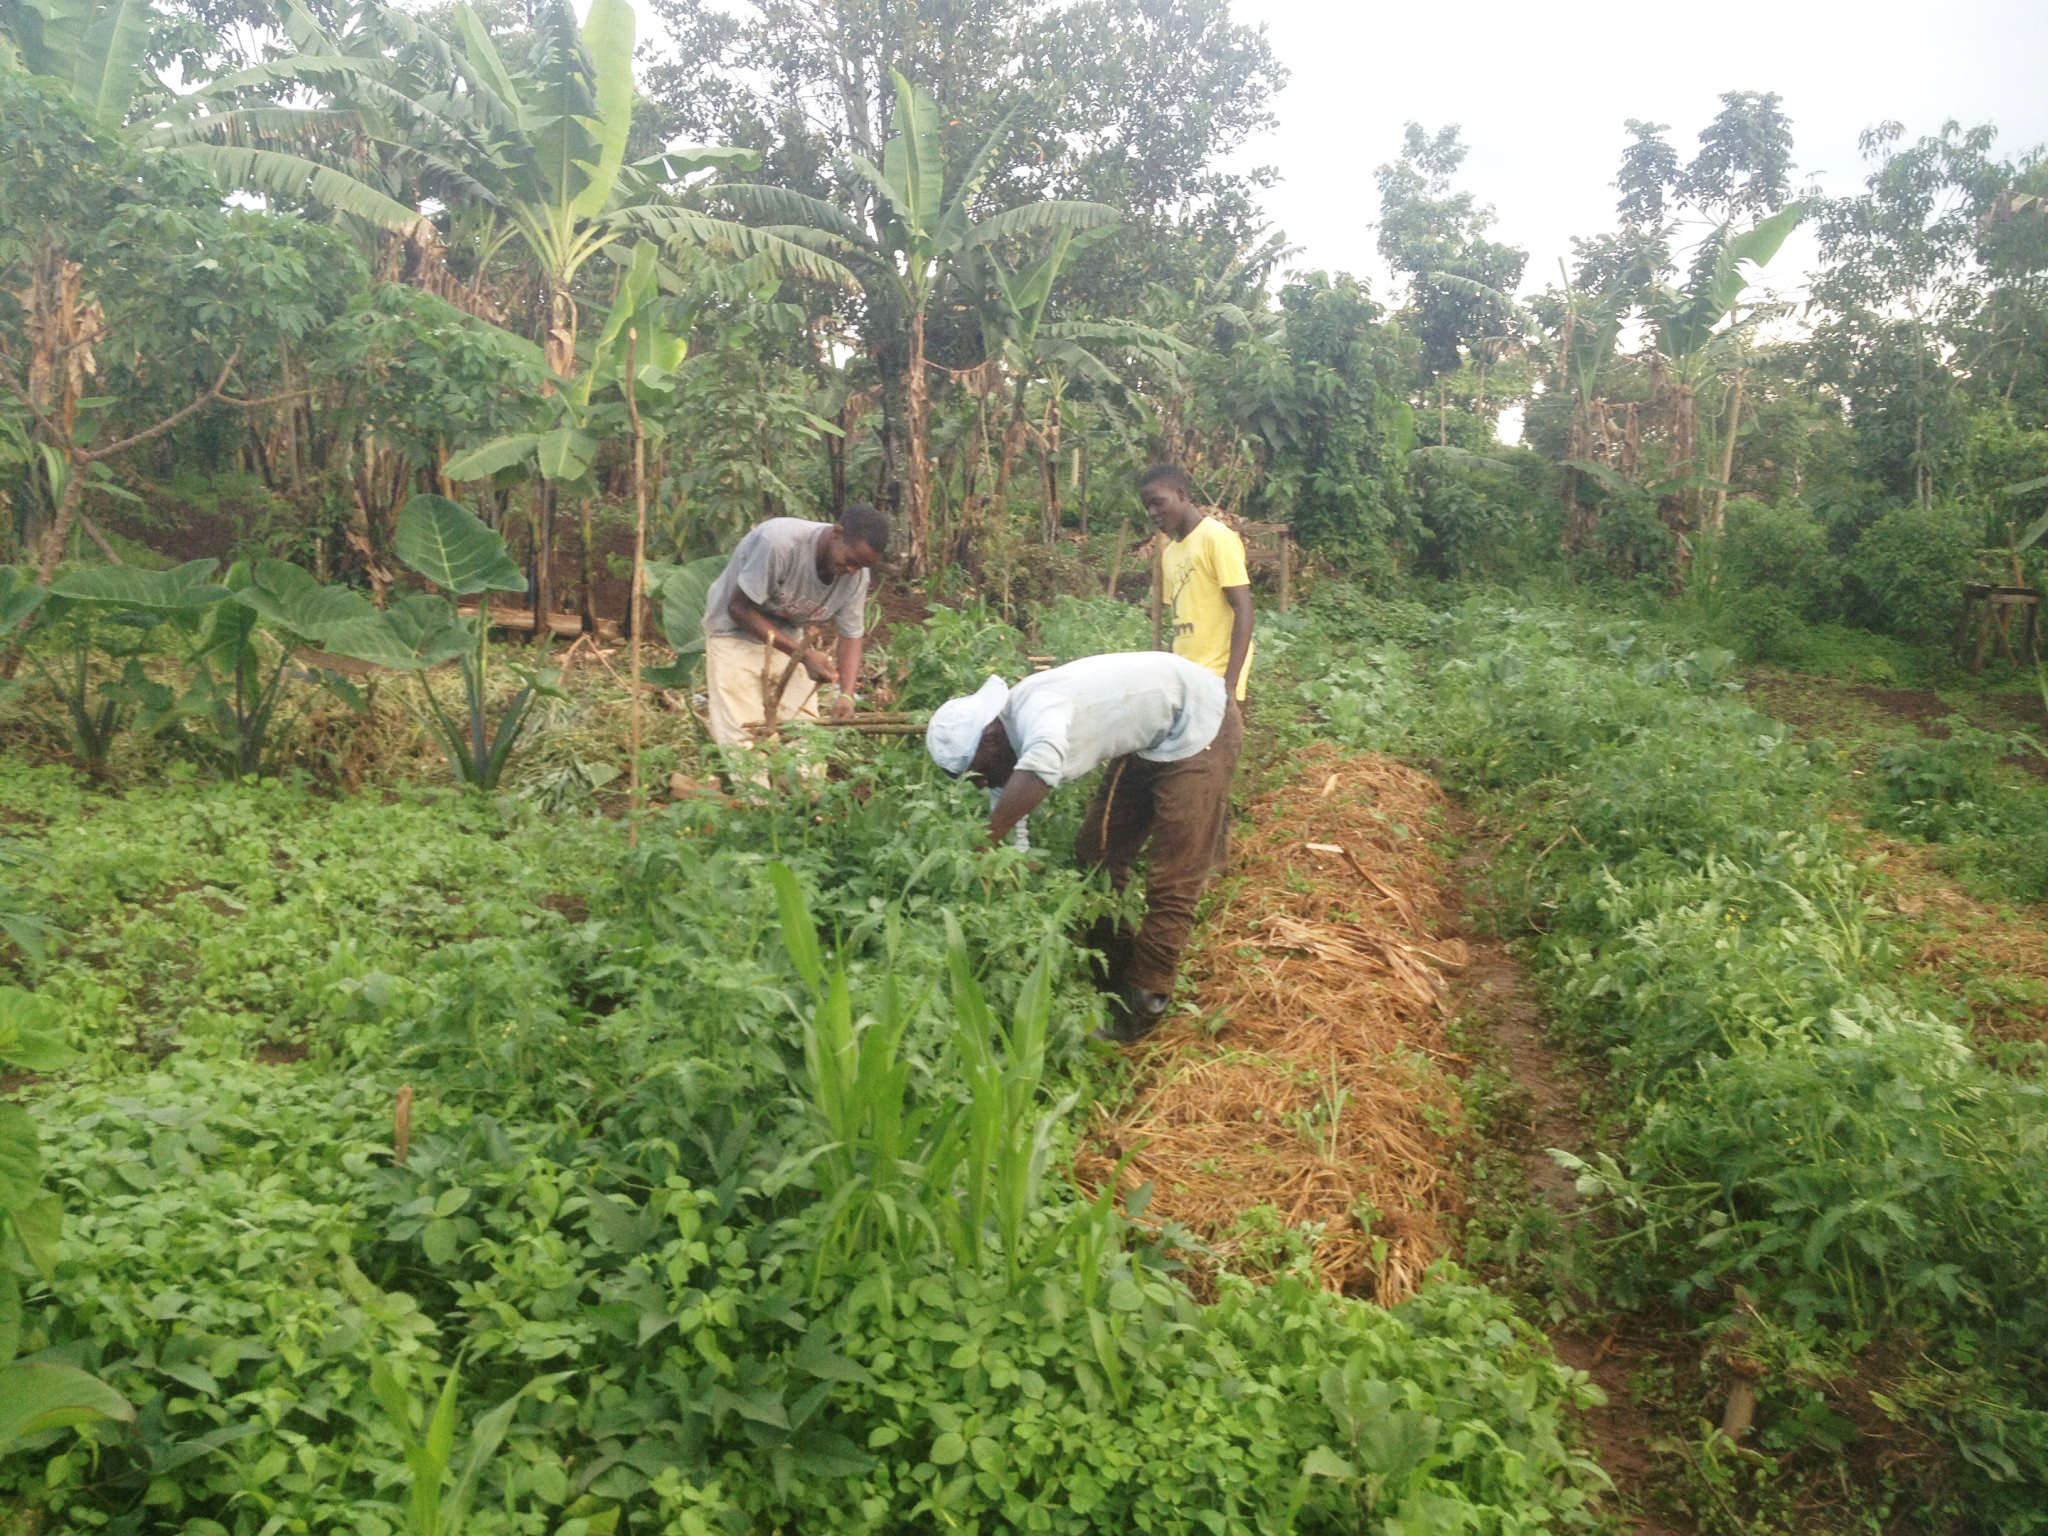 All students at the Institute for G.O.D. East Africa are involved in food production. The land is home to 44 beds.